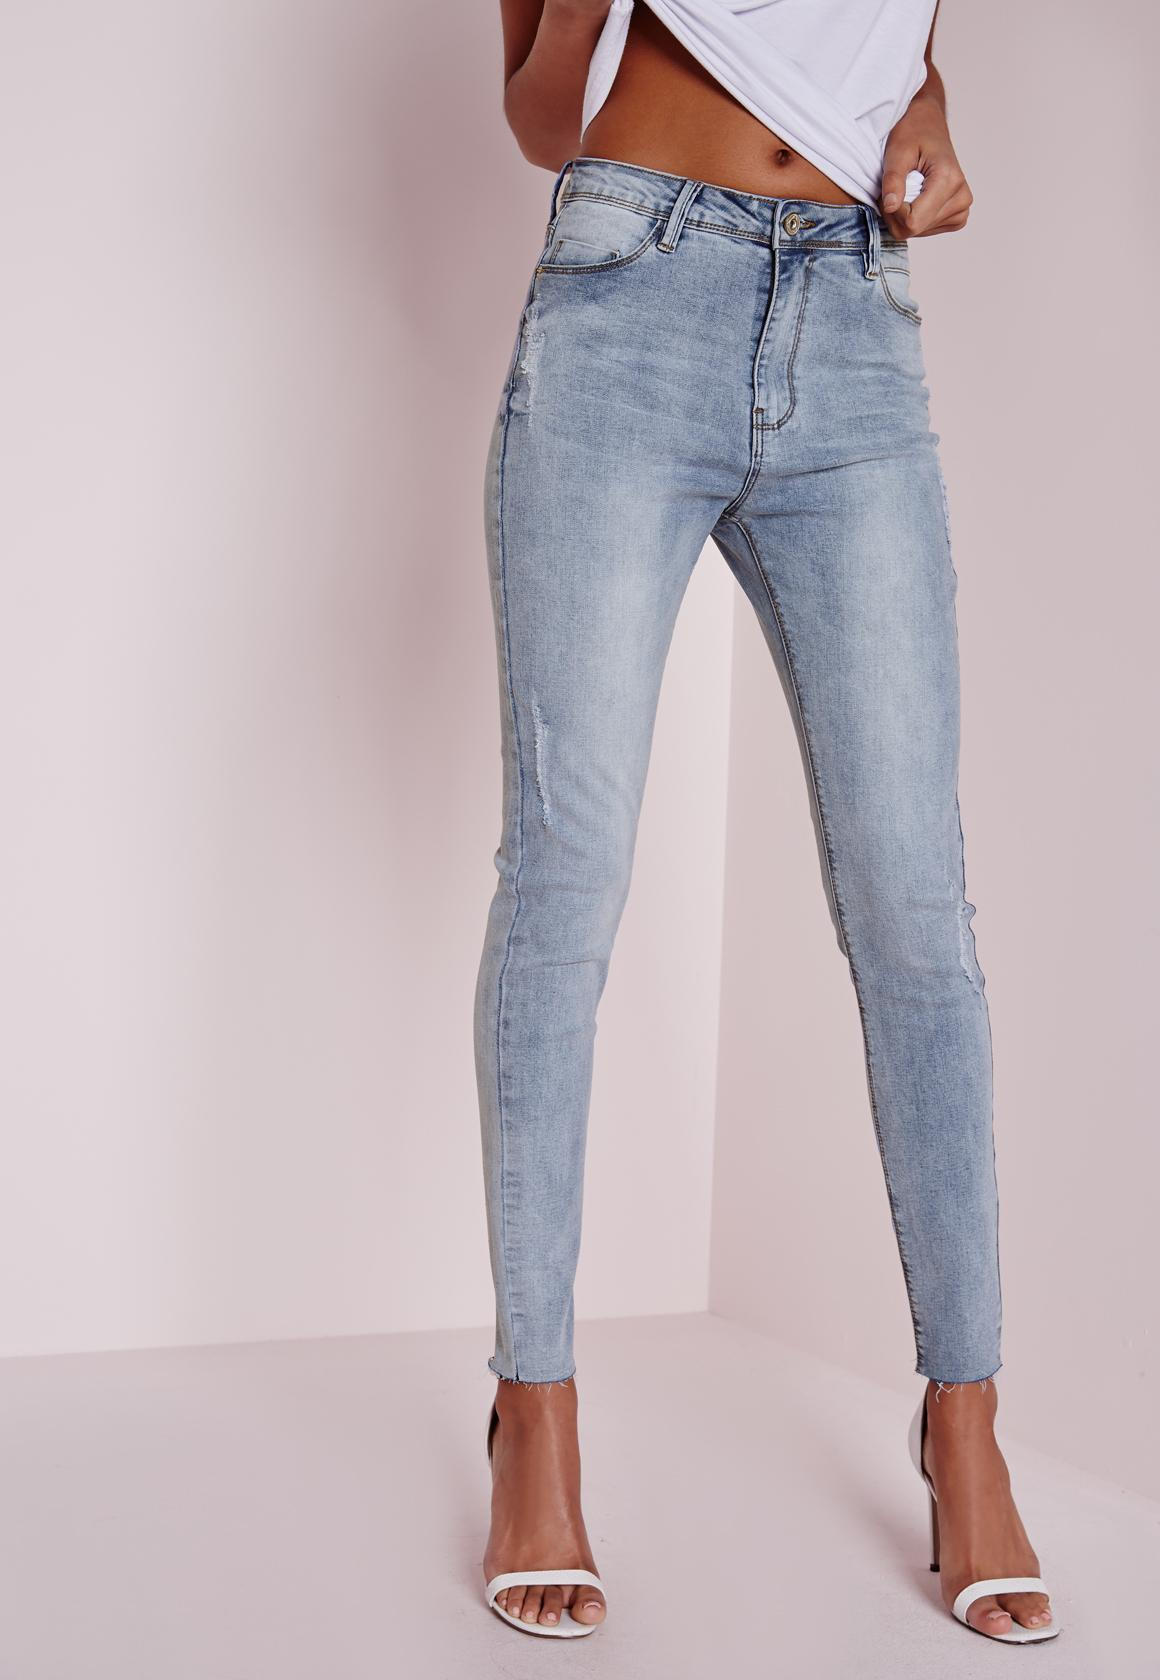 Sinner High Waisted Ripped Skinny Jeans Washed Blue   Missguided